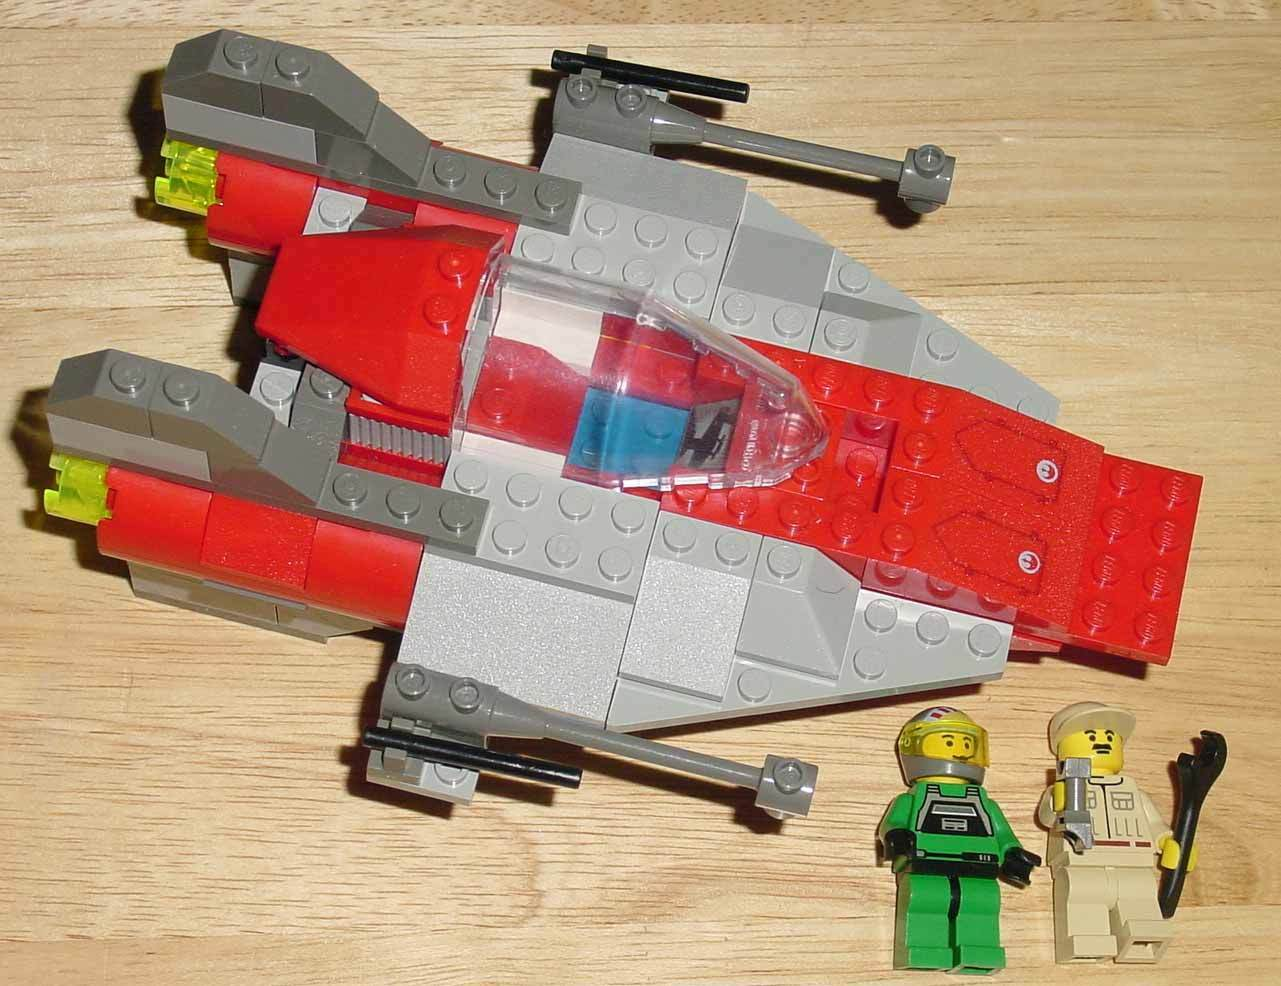 LEGO LEGO LEGO 7134 STAR WARS A-WING FIGHTER COMPLETE - OPENED BOX - WITH INSTRUCTIONS a68e5e